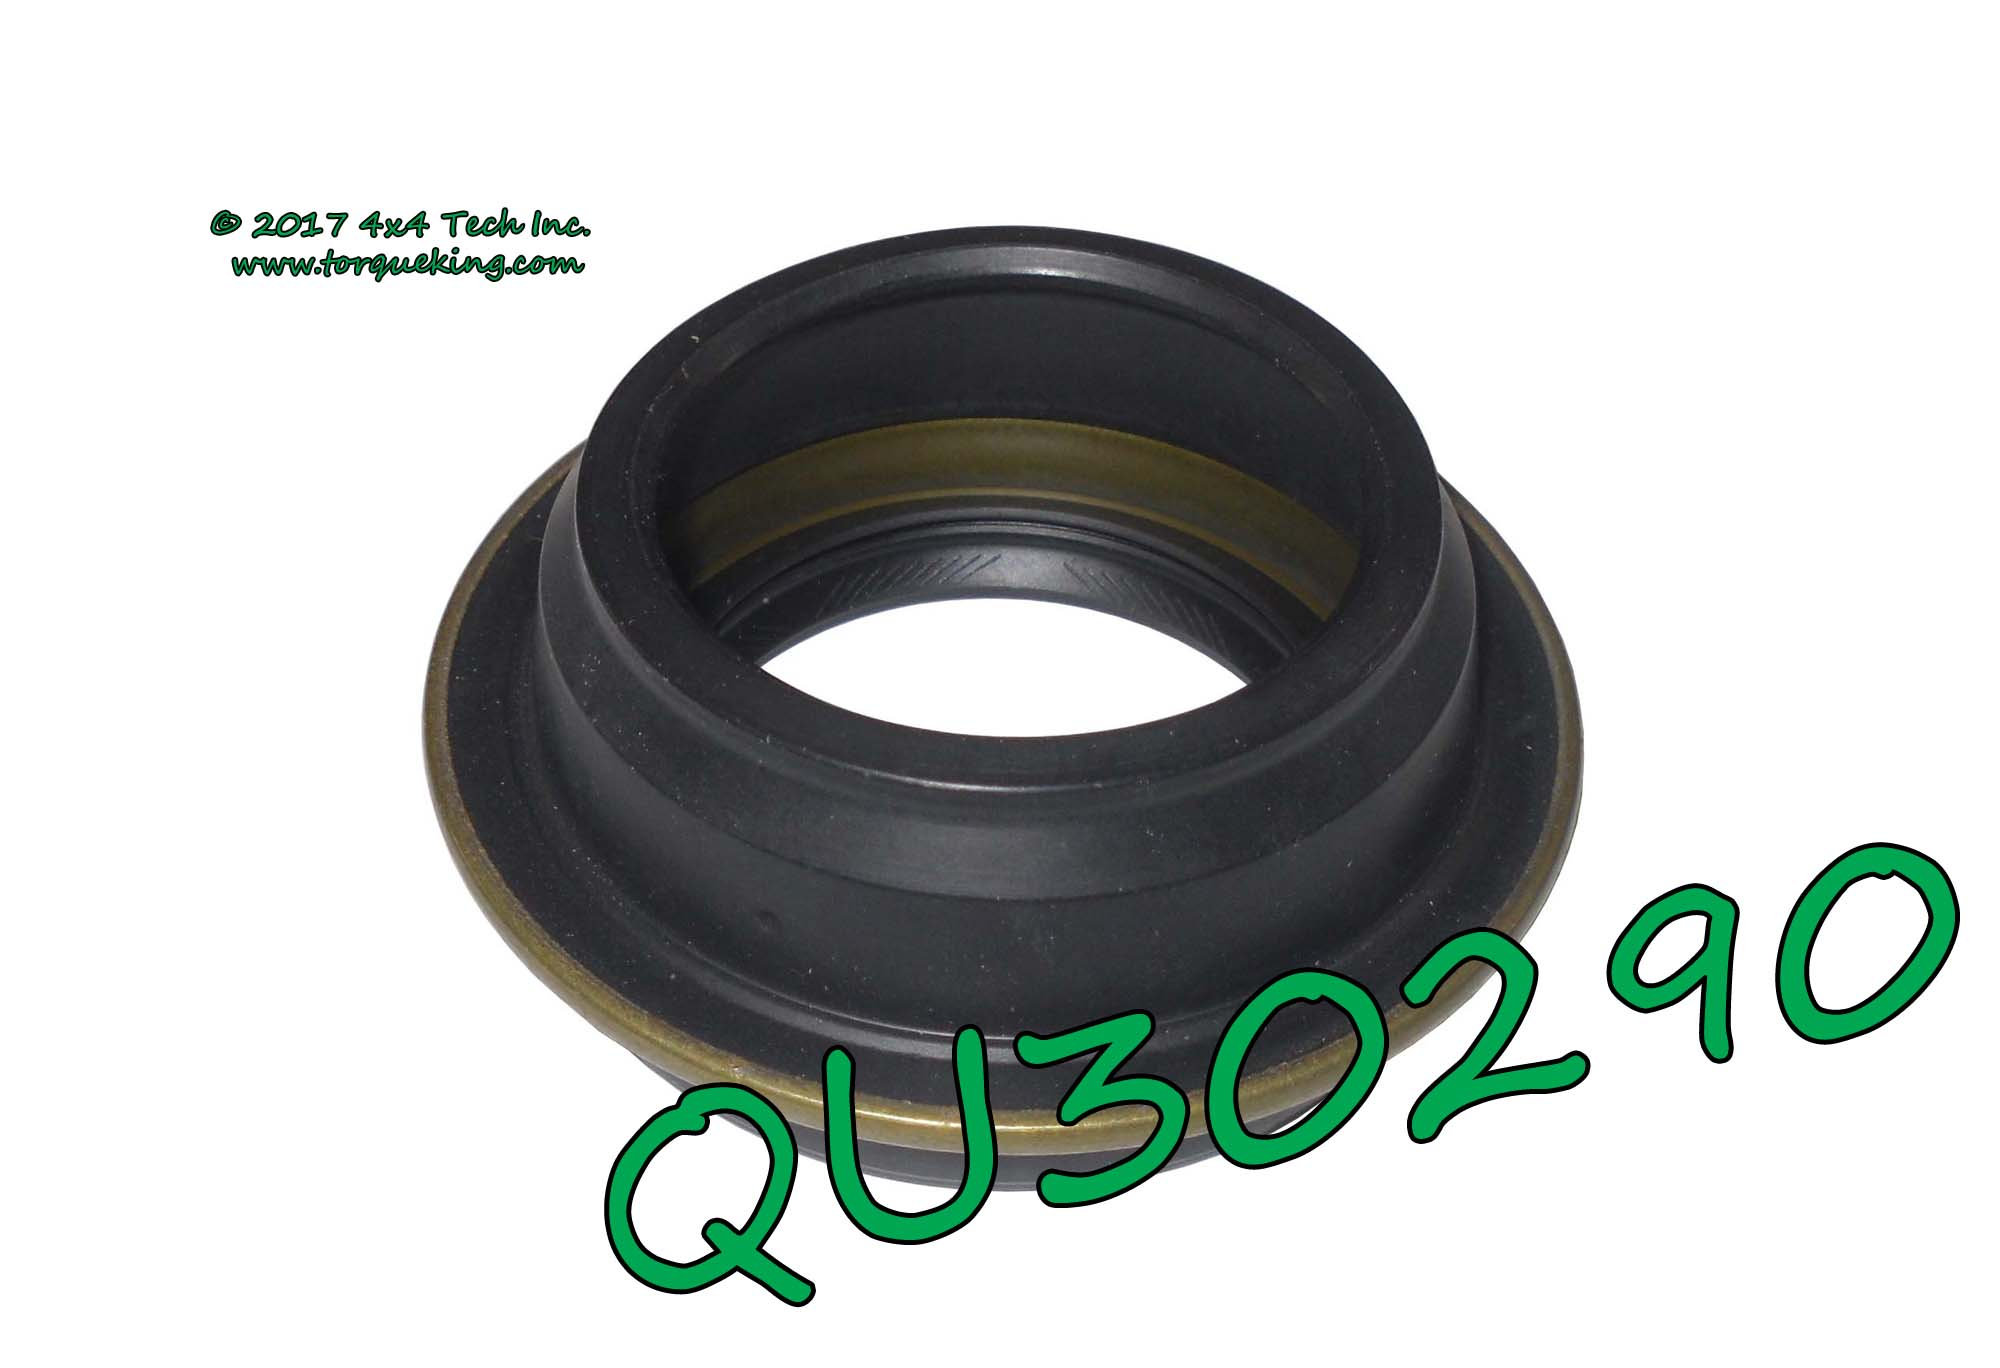 hight resolution of qu30290 2 700 x 1 835 rear output seal for new process np261ld np261hd and np261xhd transfer cases with slip yoke type rear output